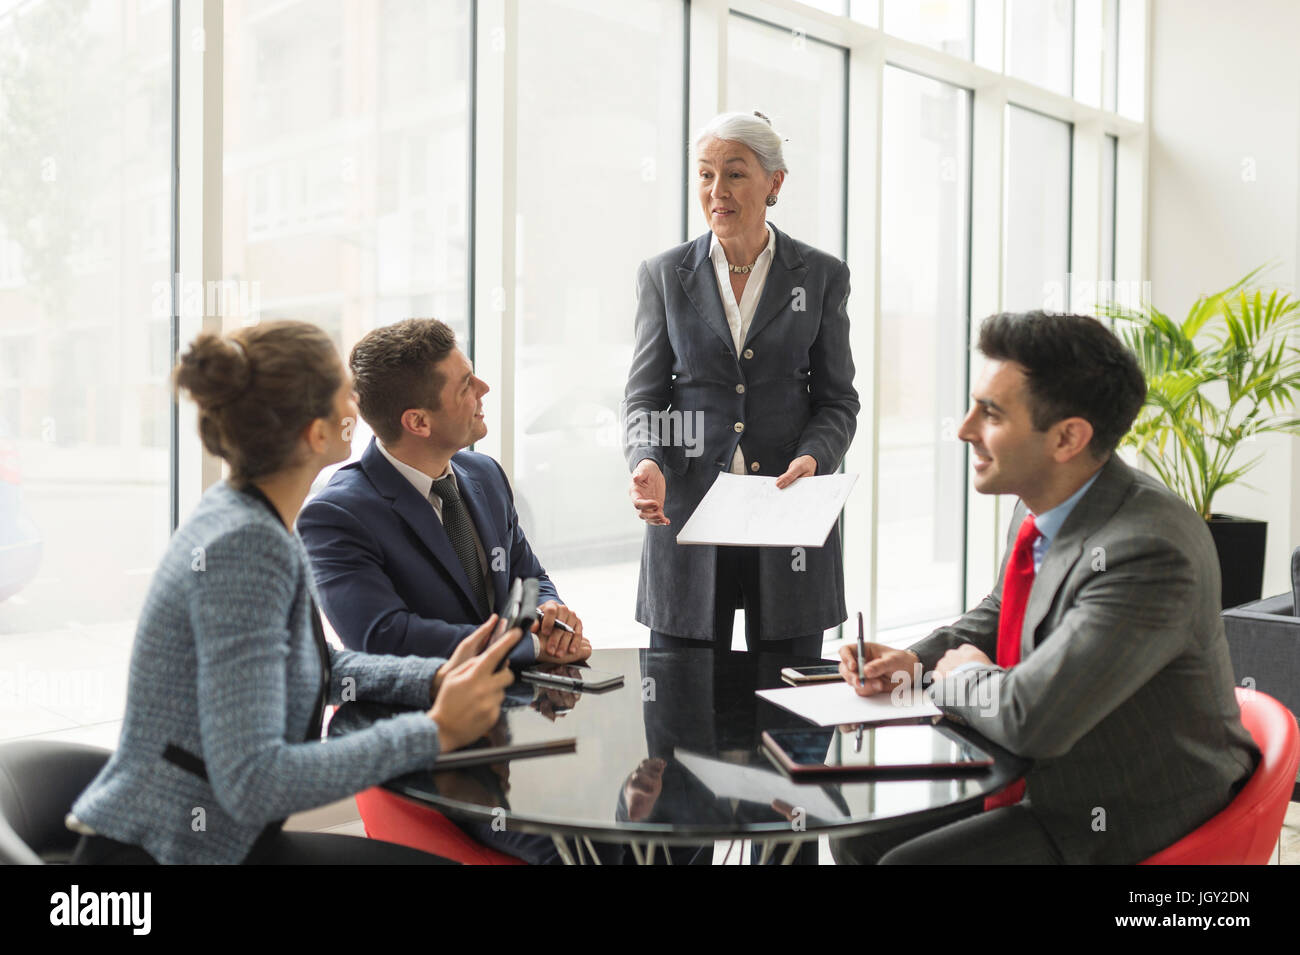 Businesswoman explaining to business team in boardroom meeting - Stock Image